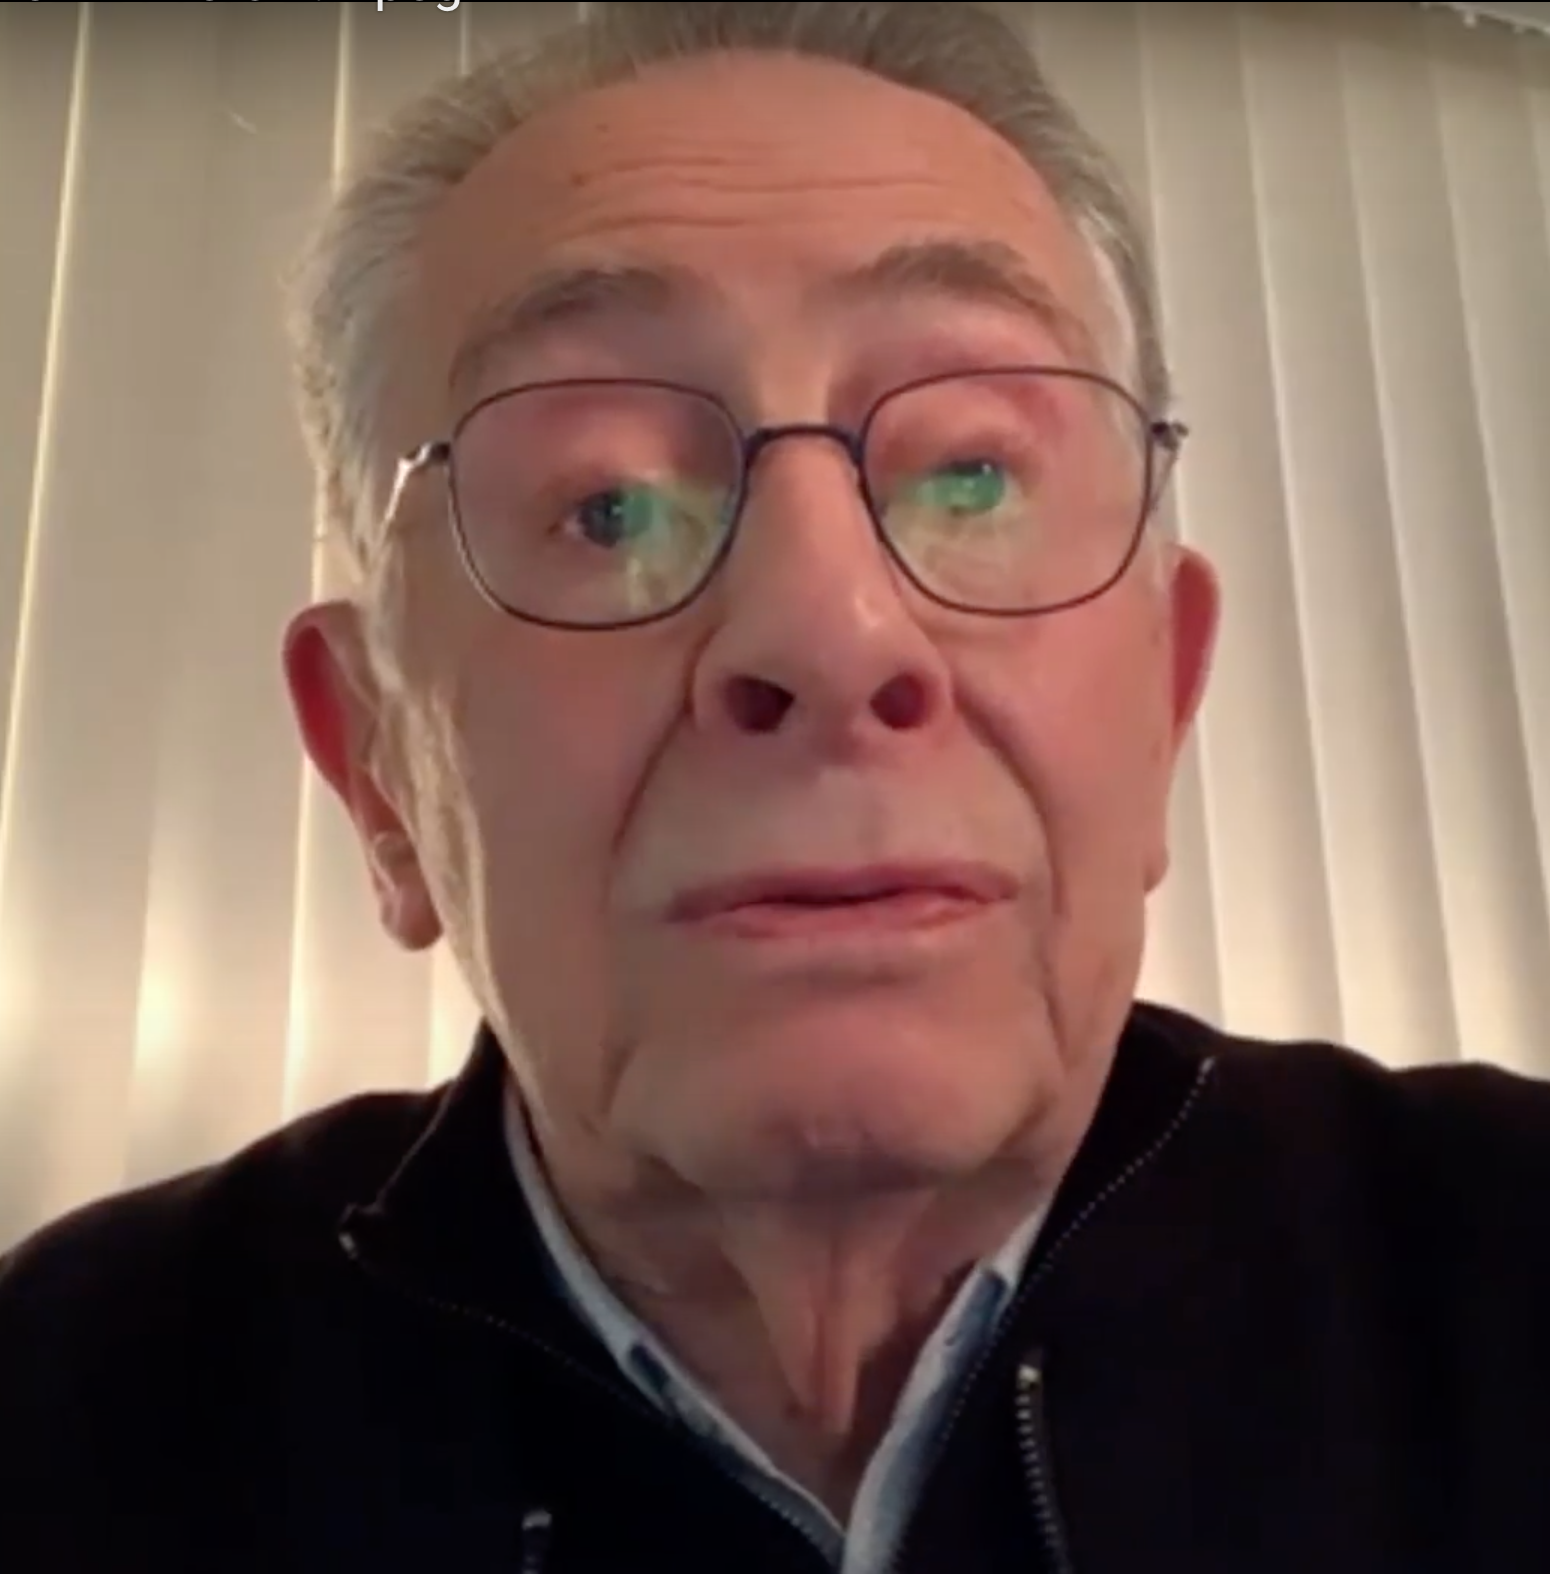 Holocaust survivors react to anti-Semitic TikTok video